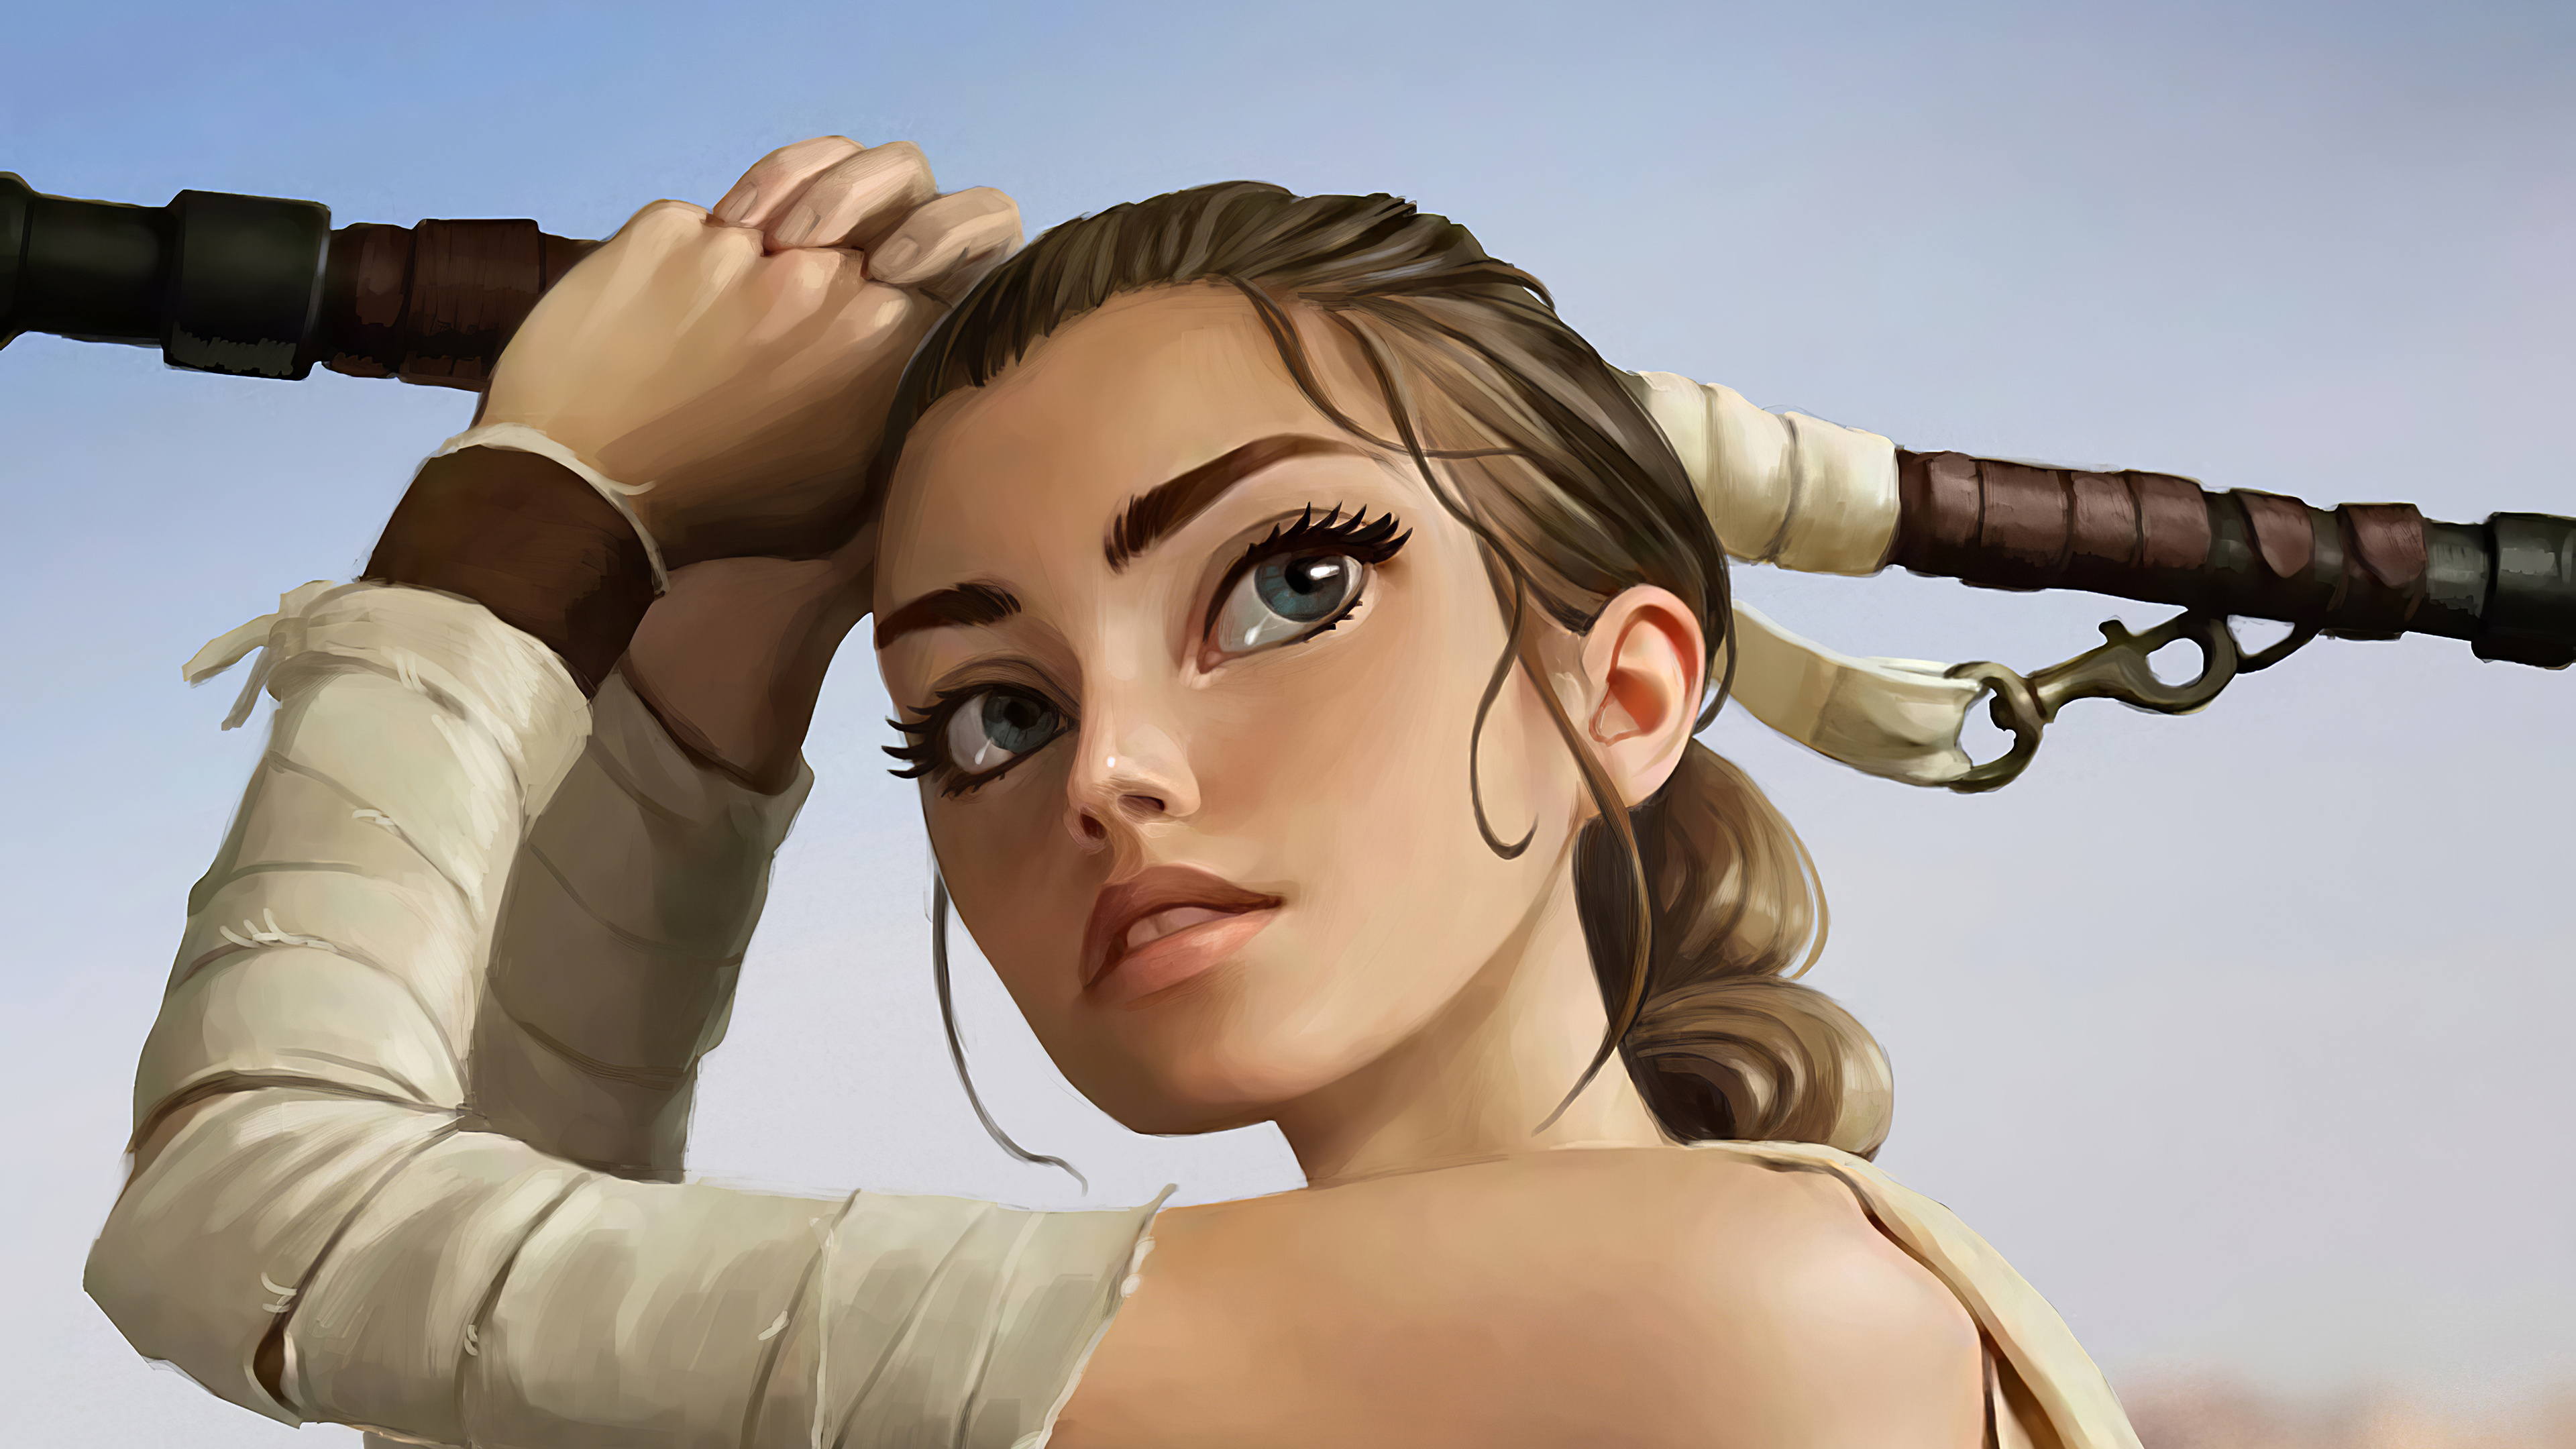 Rey Star Wars Fanart 3840x2160 Wallpaper Teahub Io